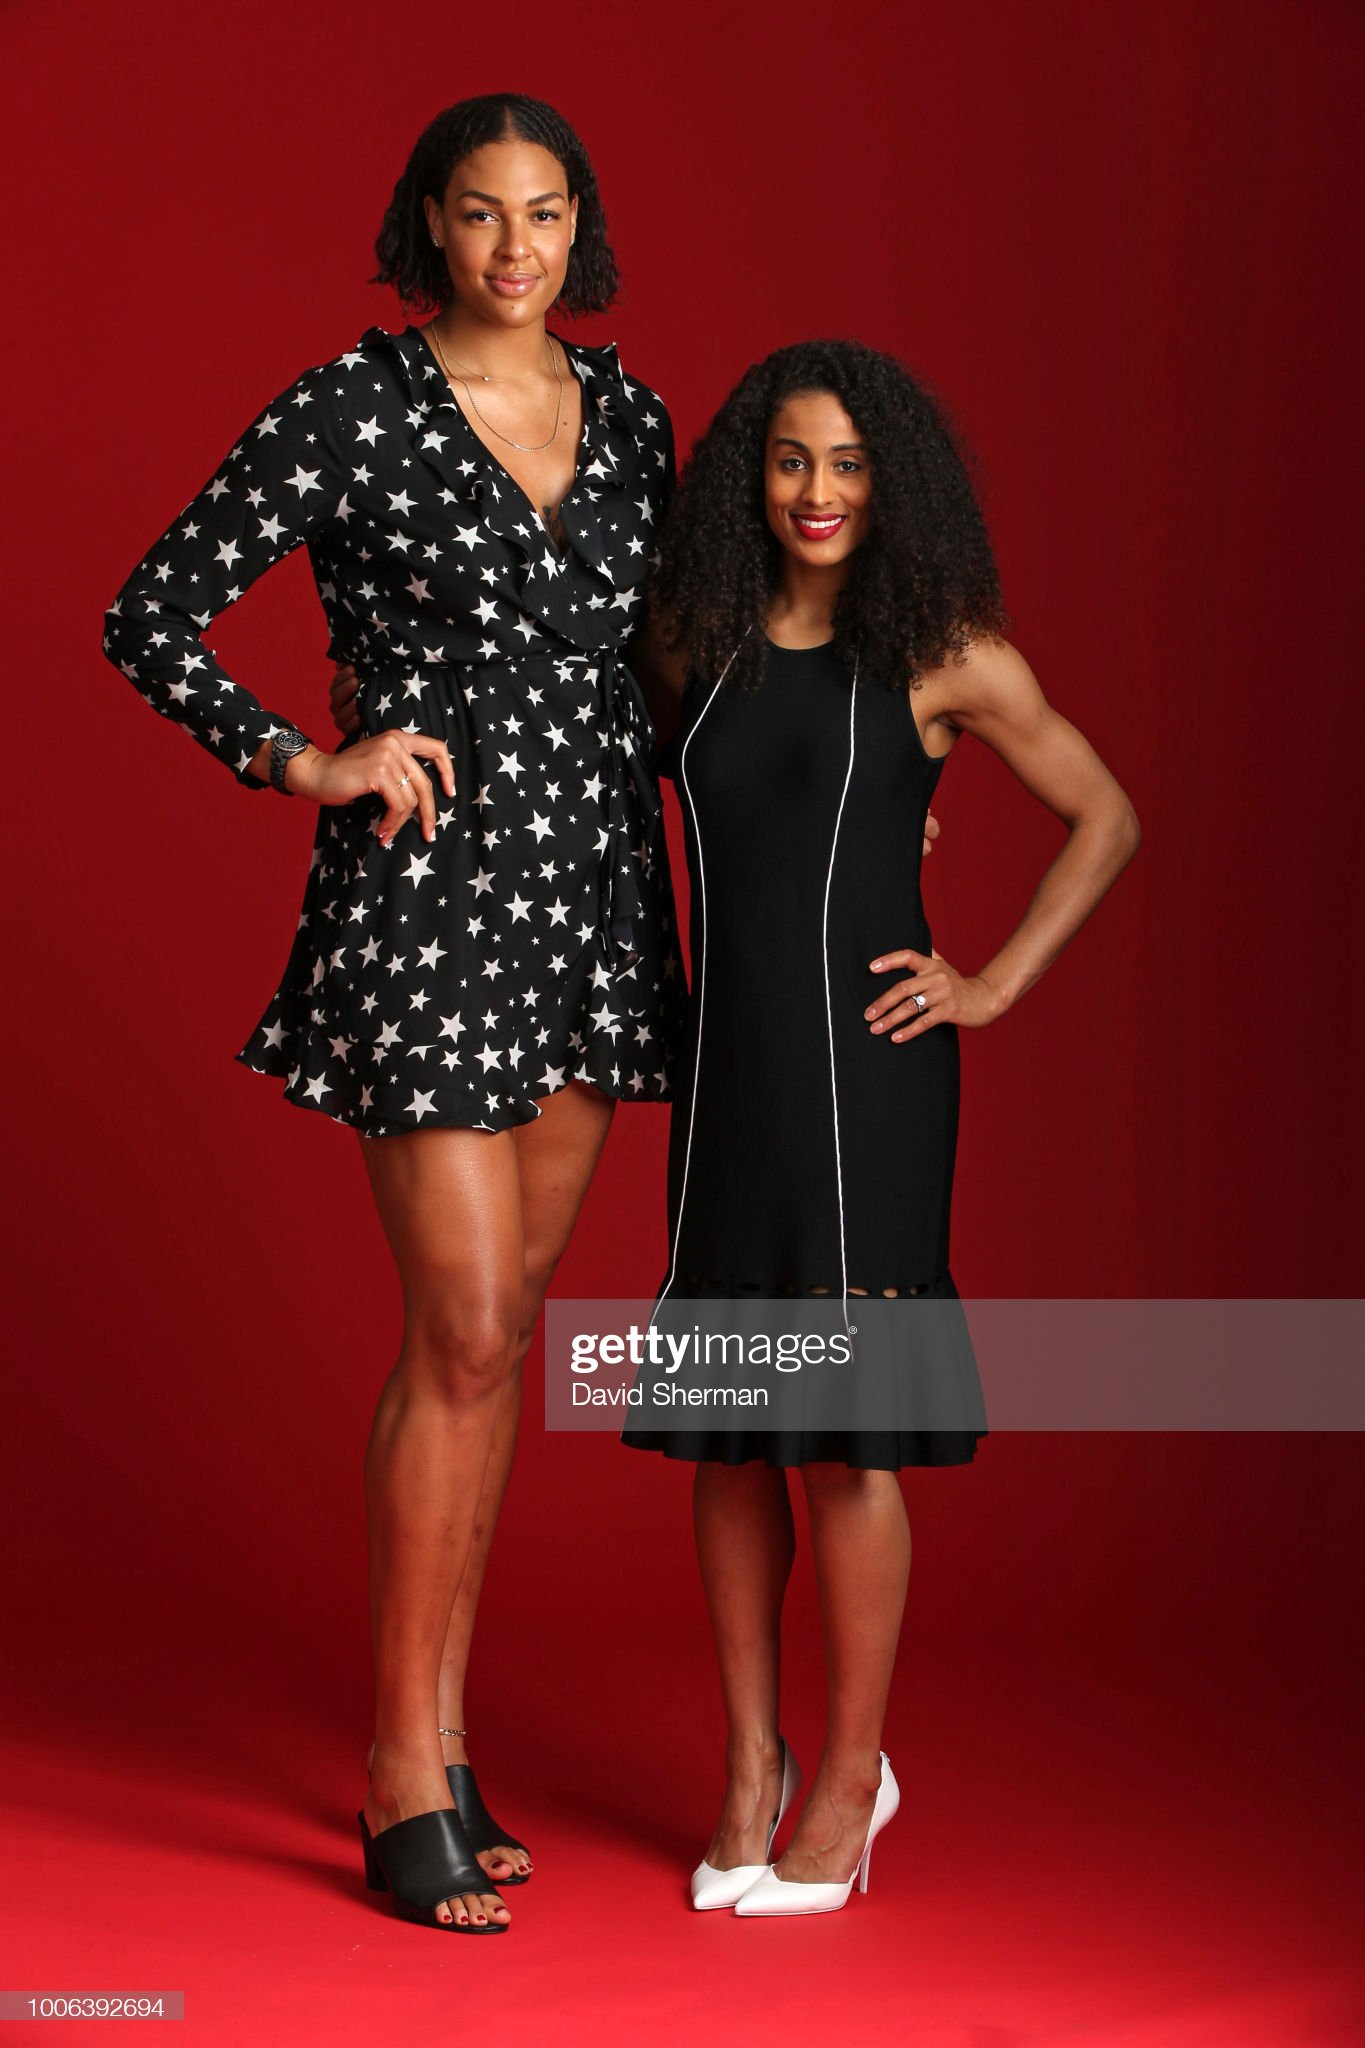 ¿Cuánto mide Skylar Diggins? - Real height Elizabeth-cambage-and-skylar-digginssmith-of-the-dallas-wings-pose-a-picture-id1006392694?s=2048x2048